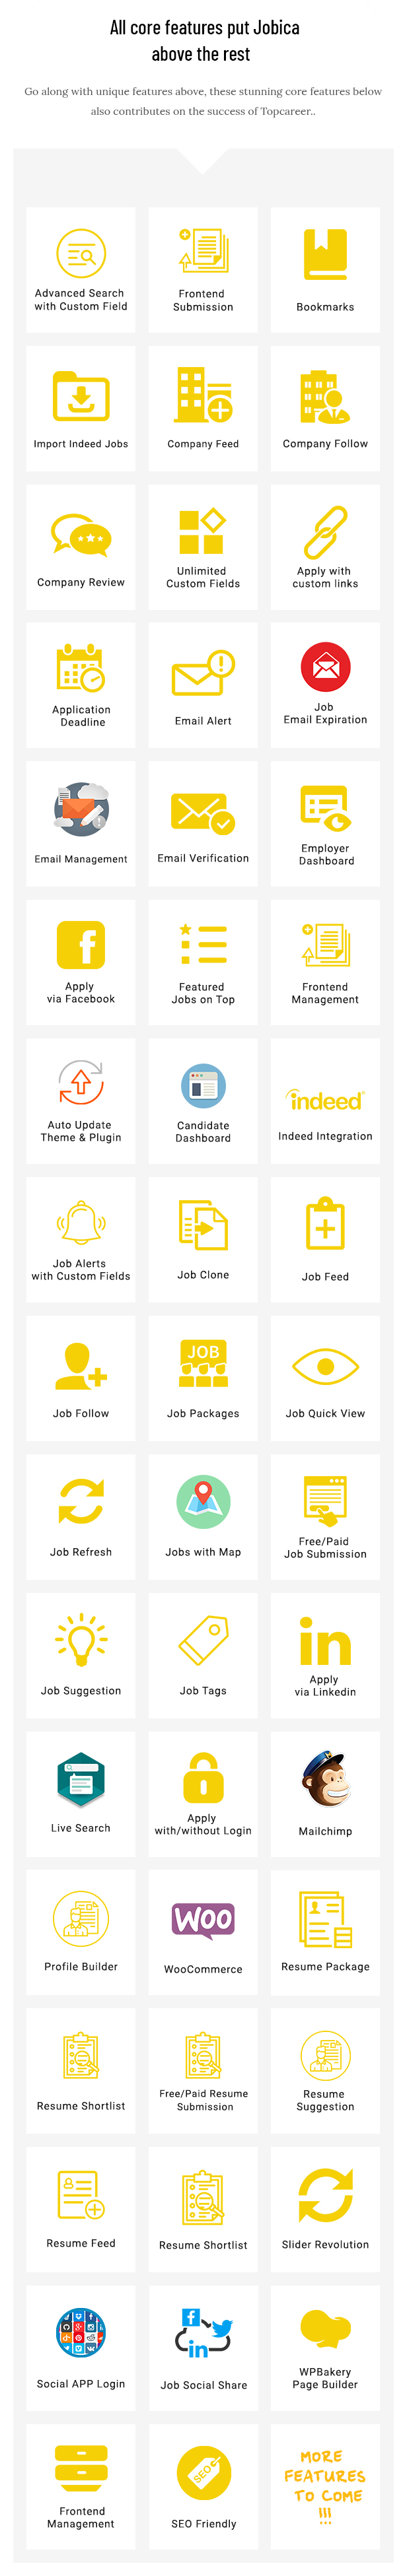 TopCareer - Job Board WordPress Theme - 7